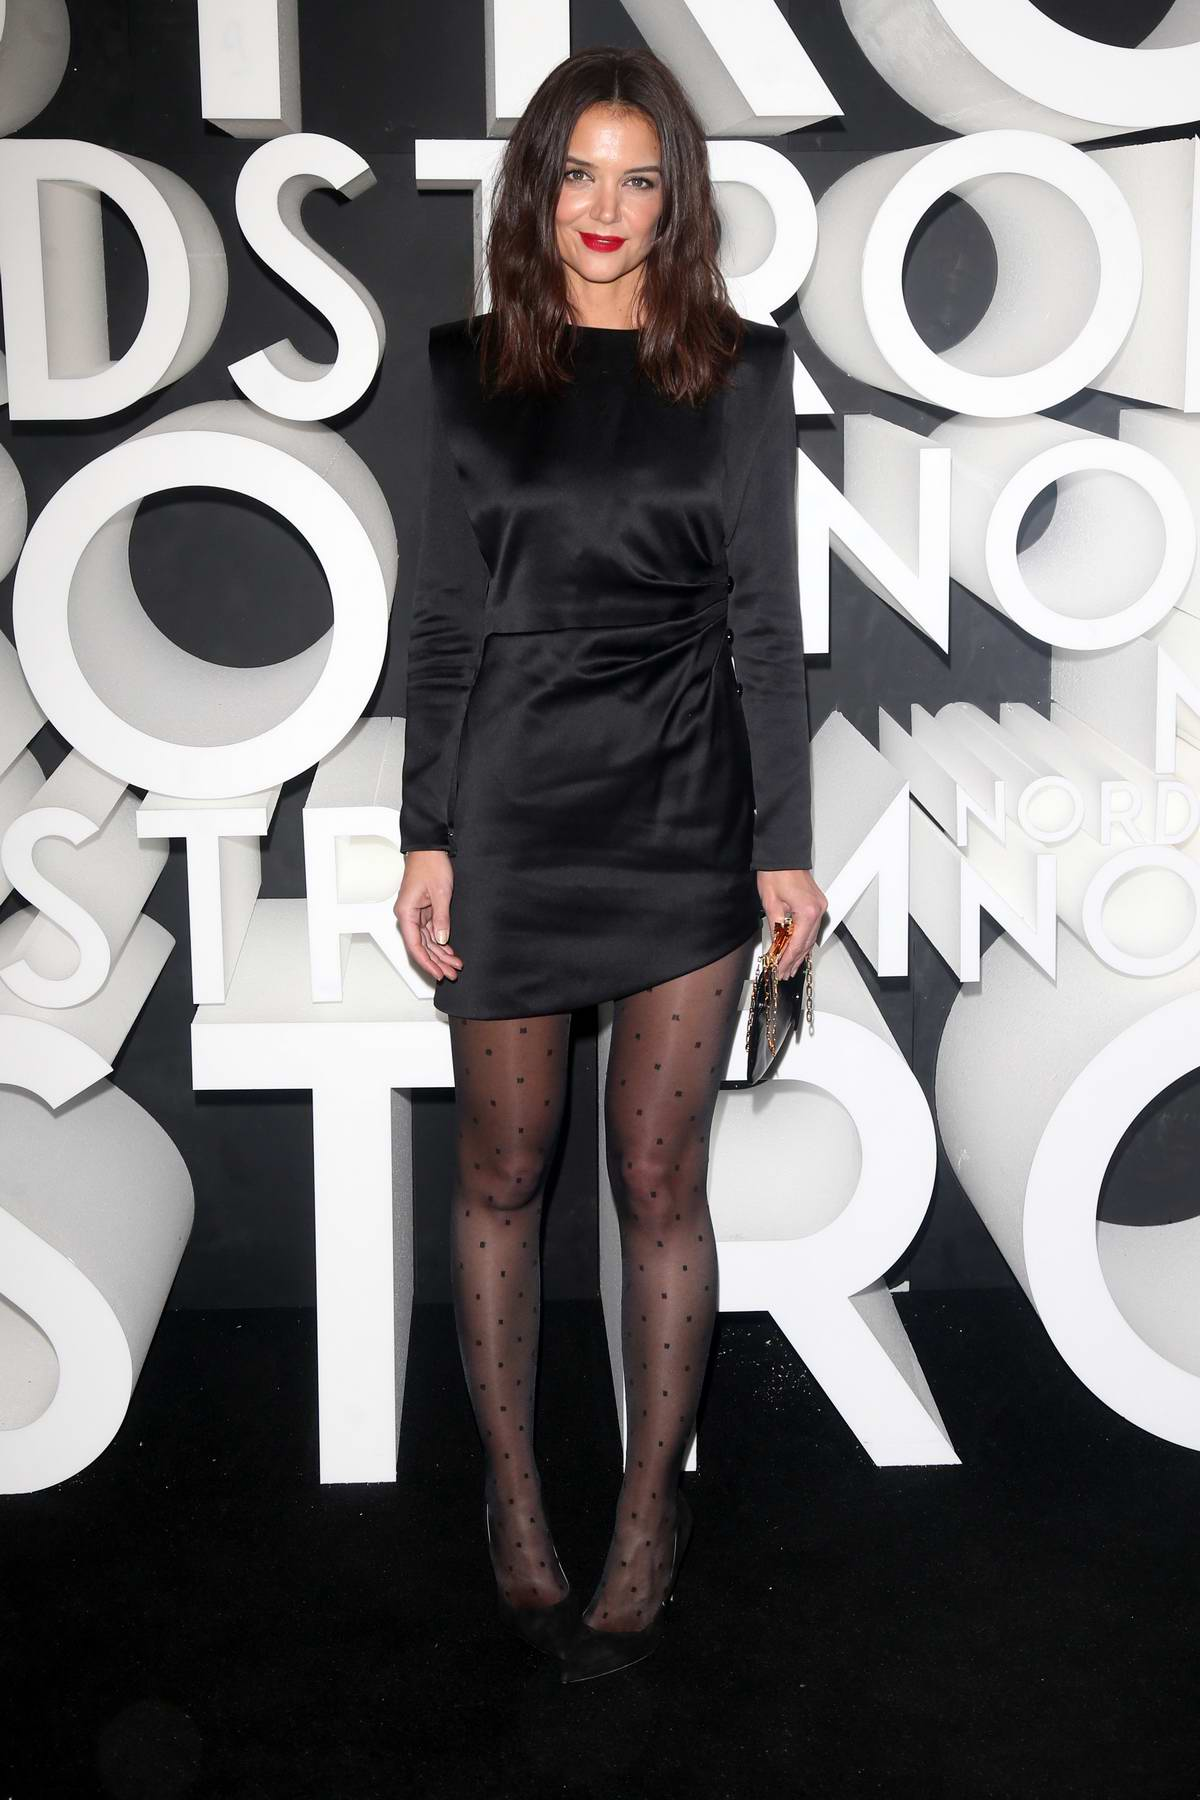 Katie Holmes attends the Nordstrom NY Flagship Opening Party in New York City